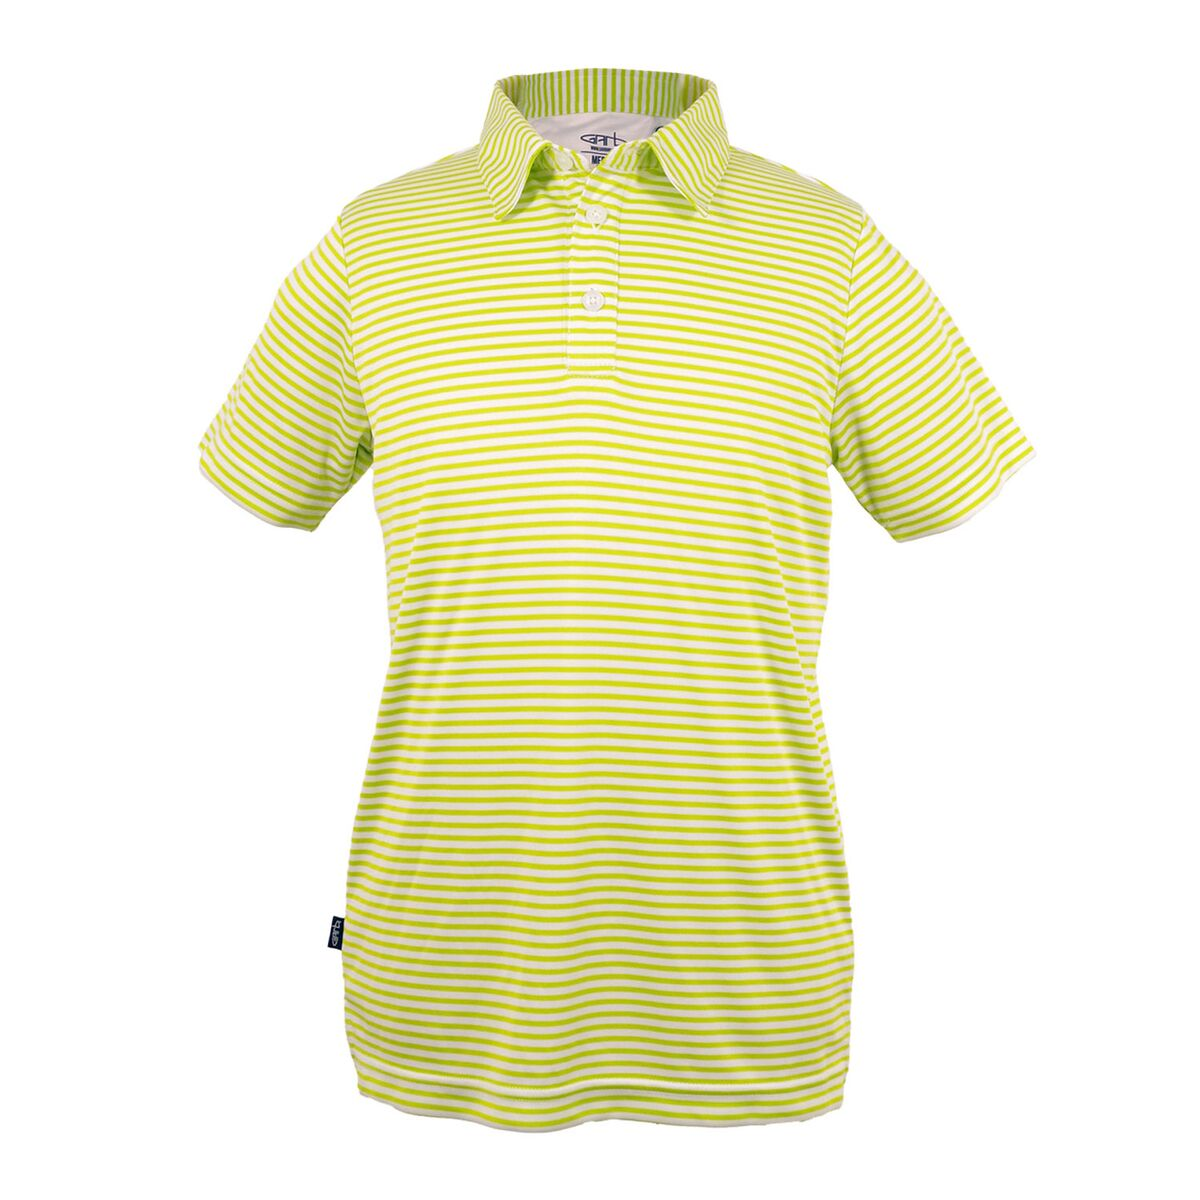 fd10e9bd0f Chandler - Boy's Striped Junior Golf Polo | Garb Junior Golf Apparel